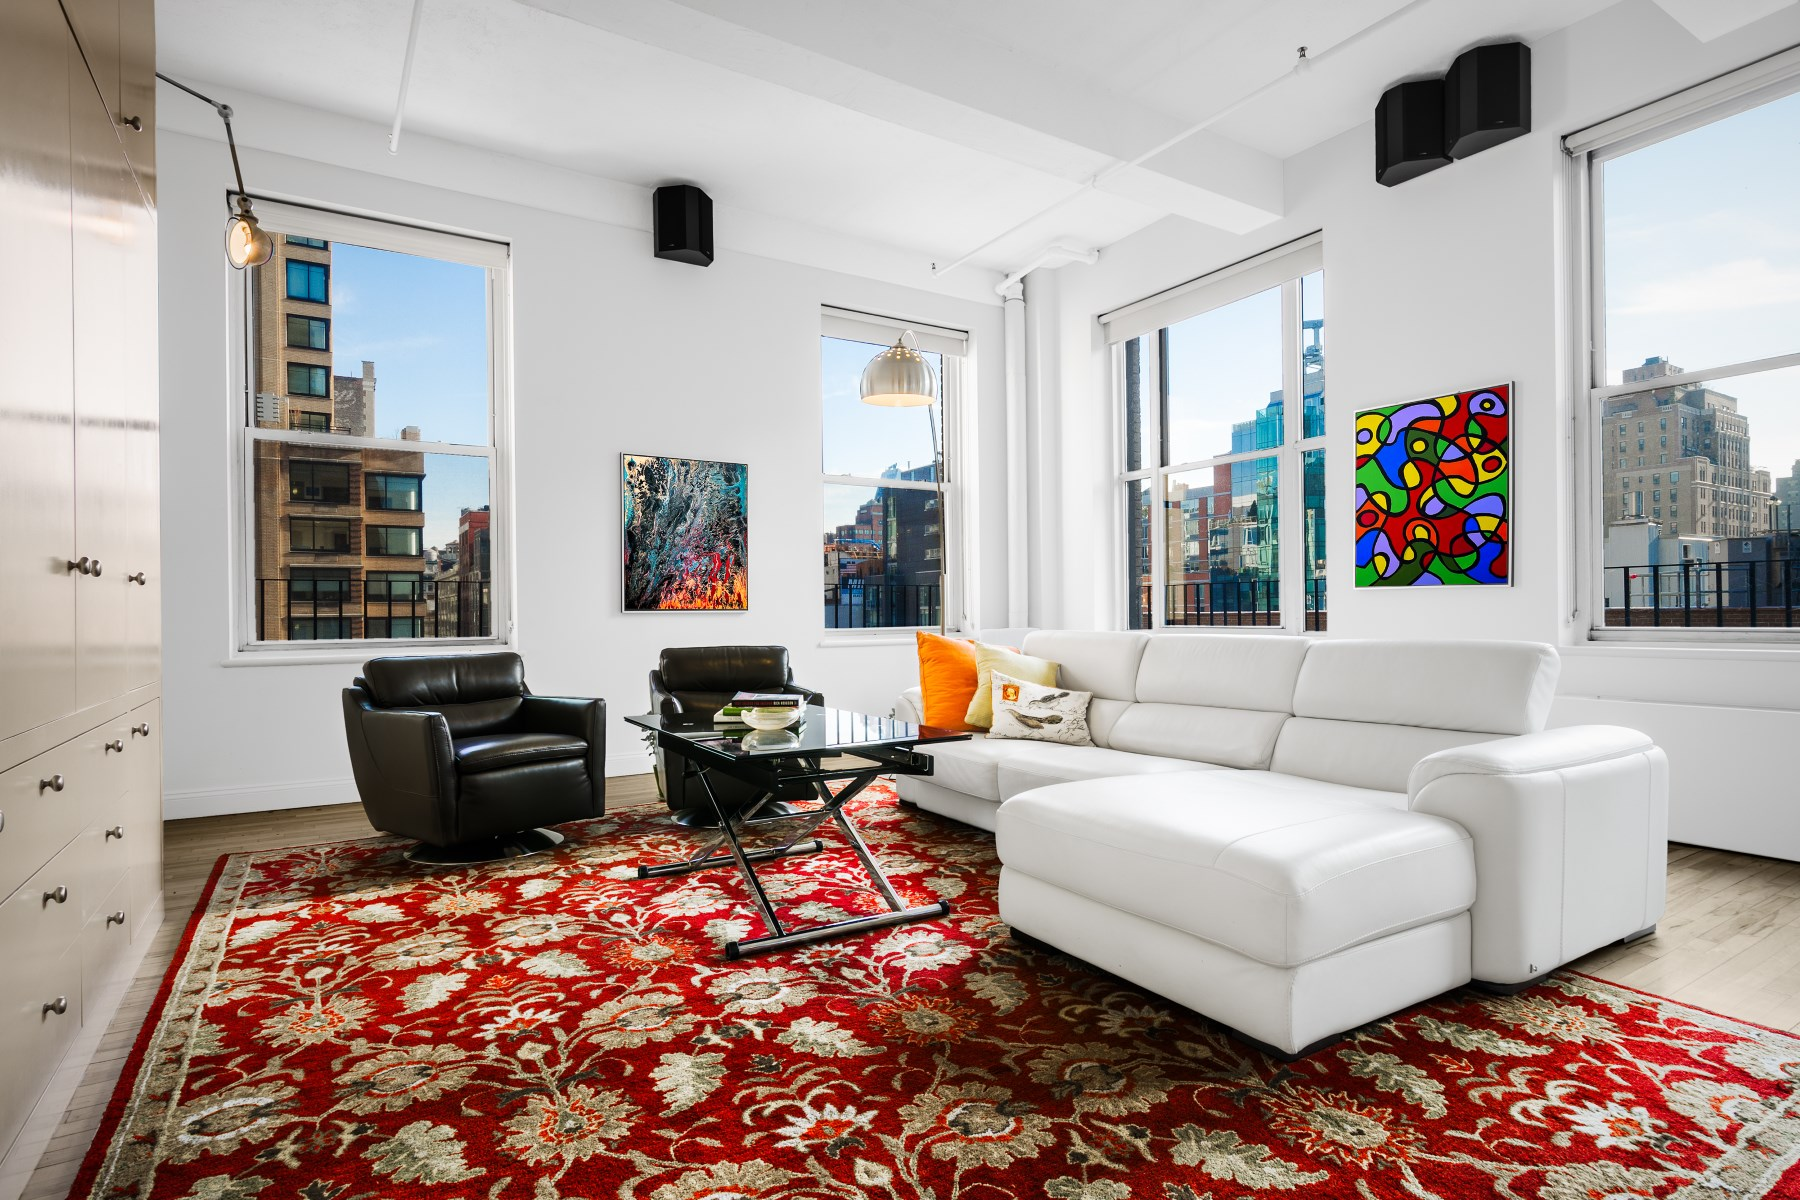 Co-op for Sale at Massive Chelsea Loft 205 West 19th Street Apt 6f Chelsea, New York, New York 10011 United States